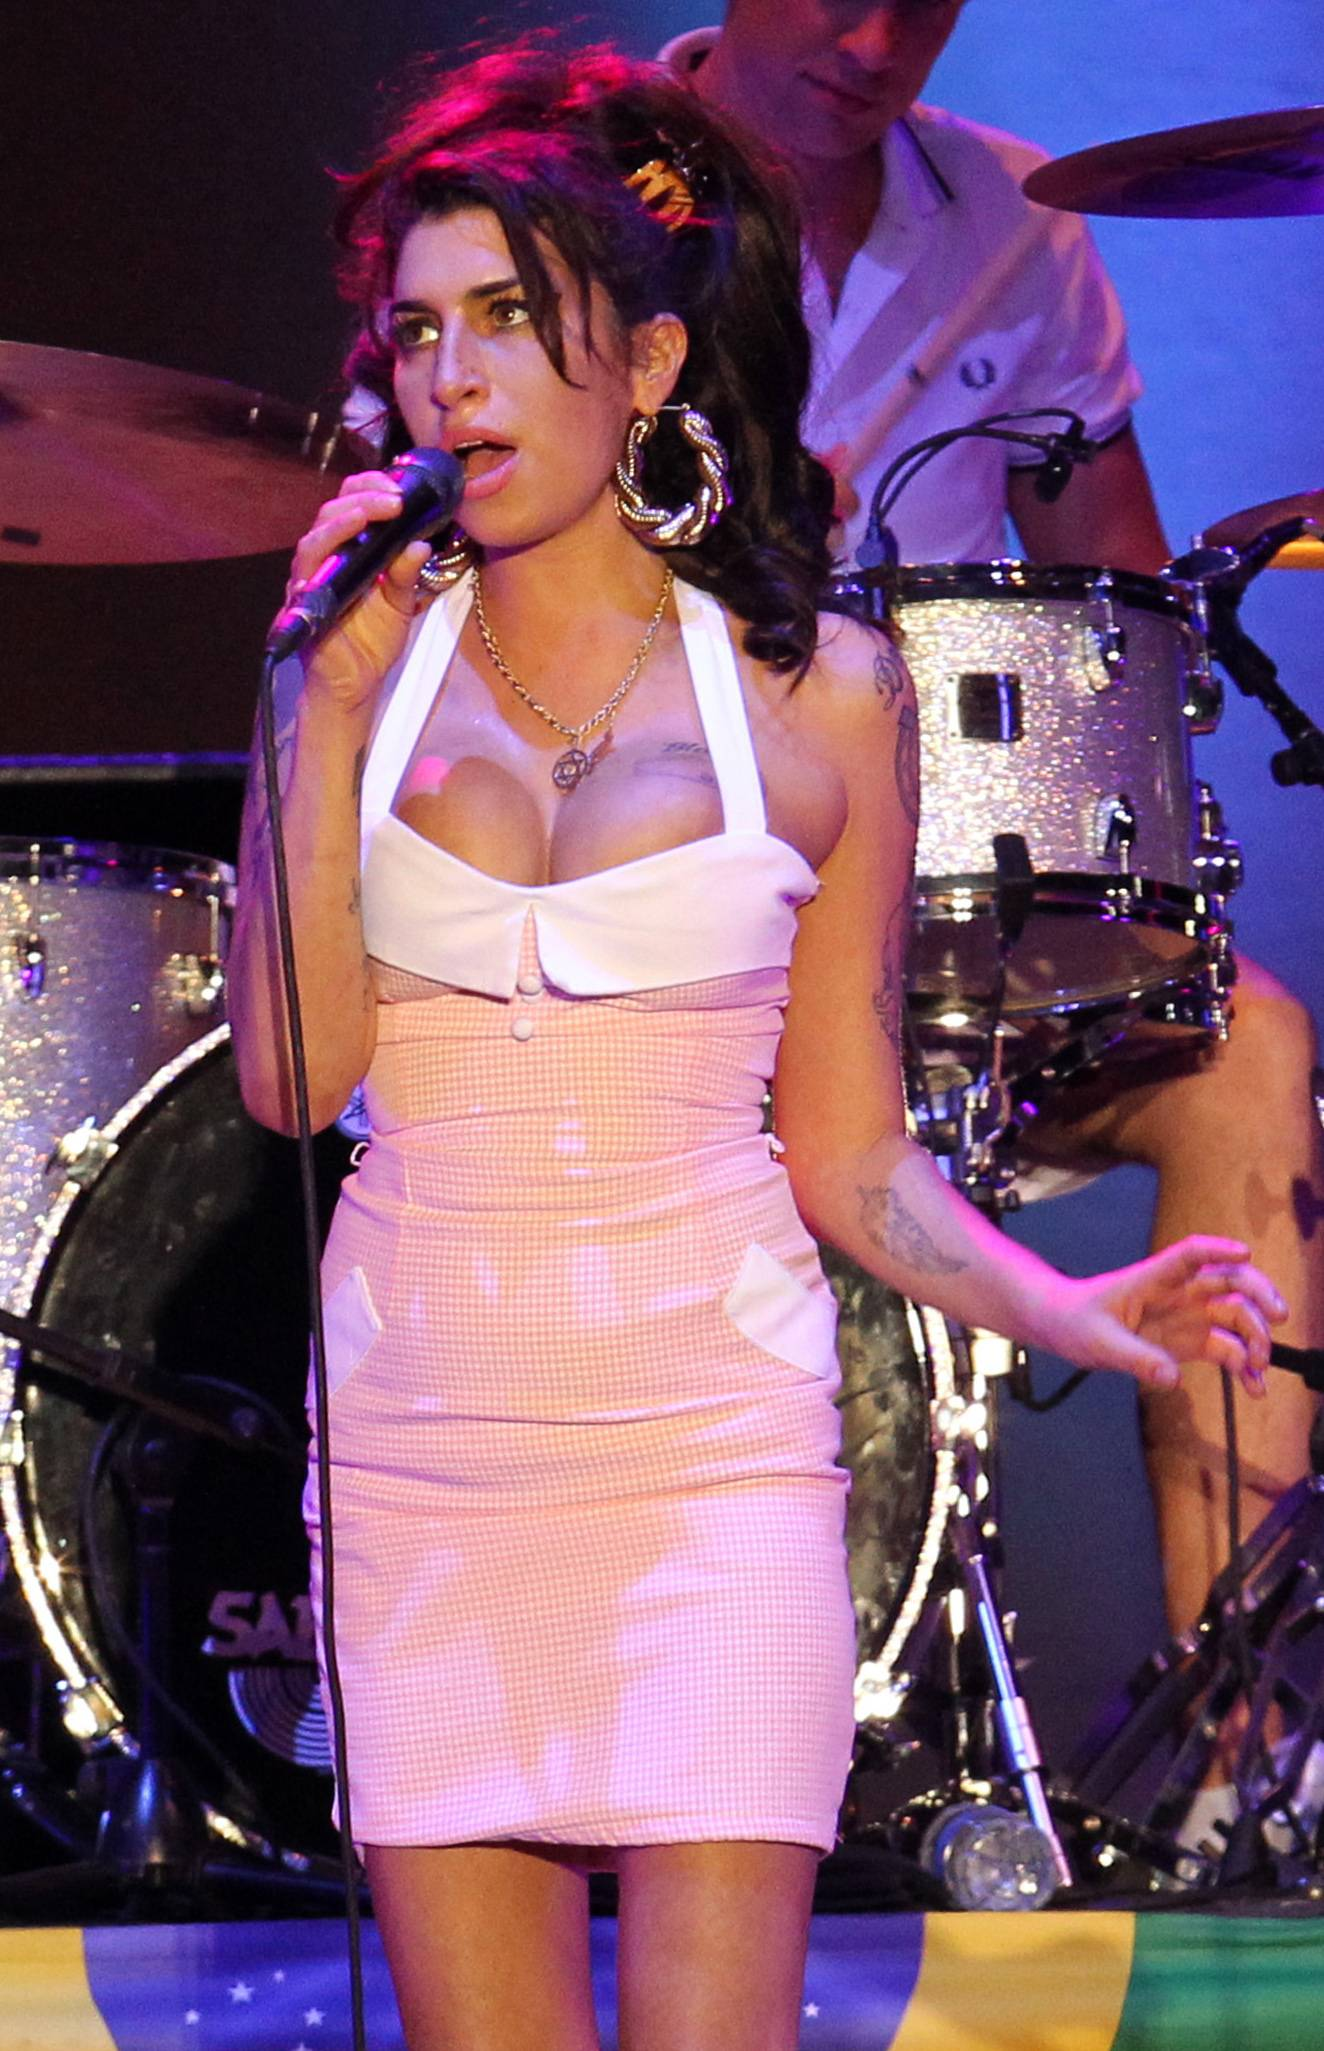 Amy Winehouse among musical talents gone too soon